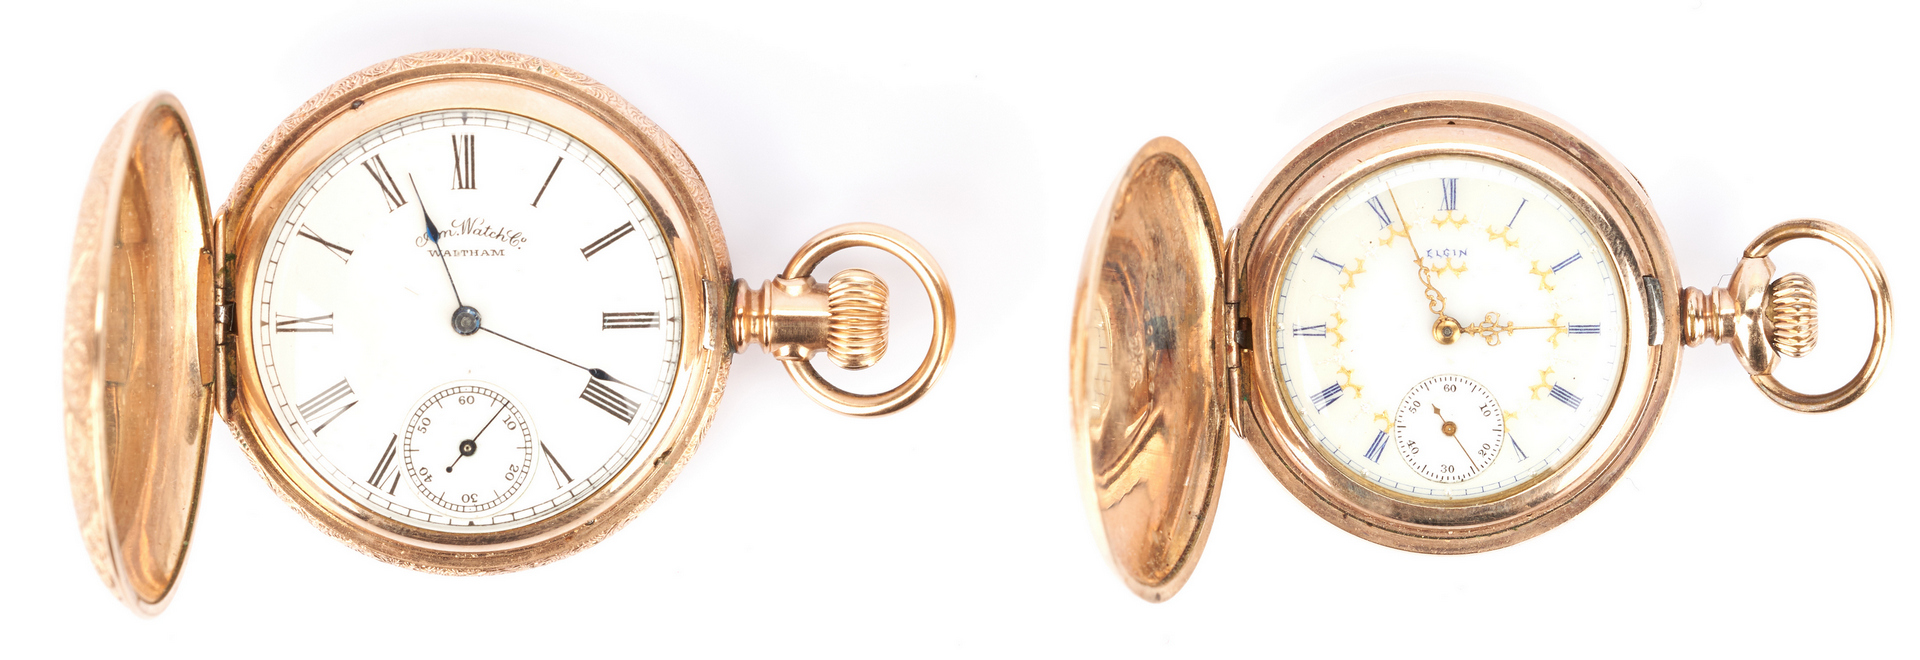 Lot 232: 2 14K Hunting Case Pocket Watches